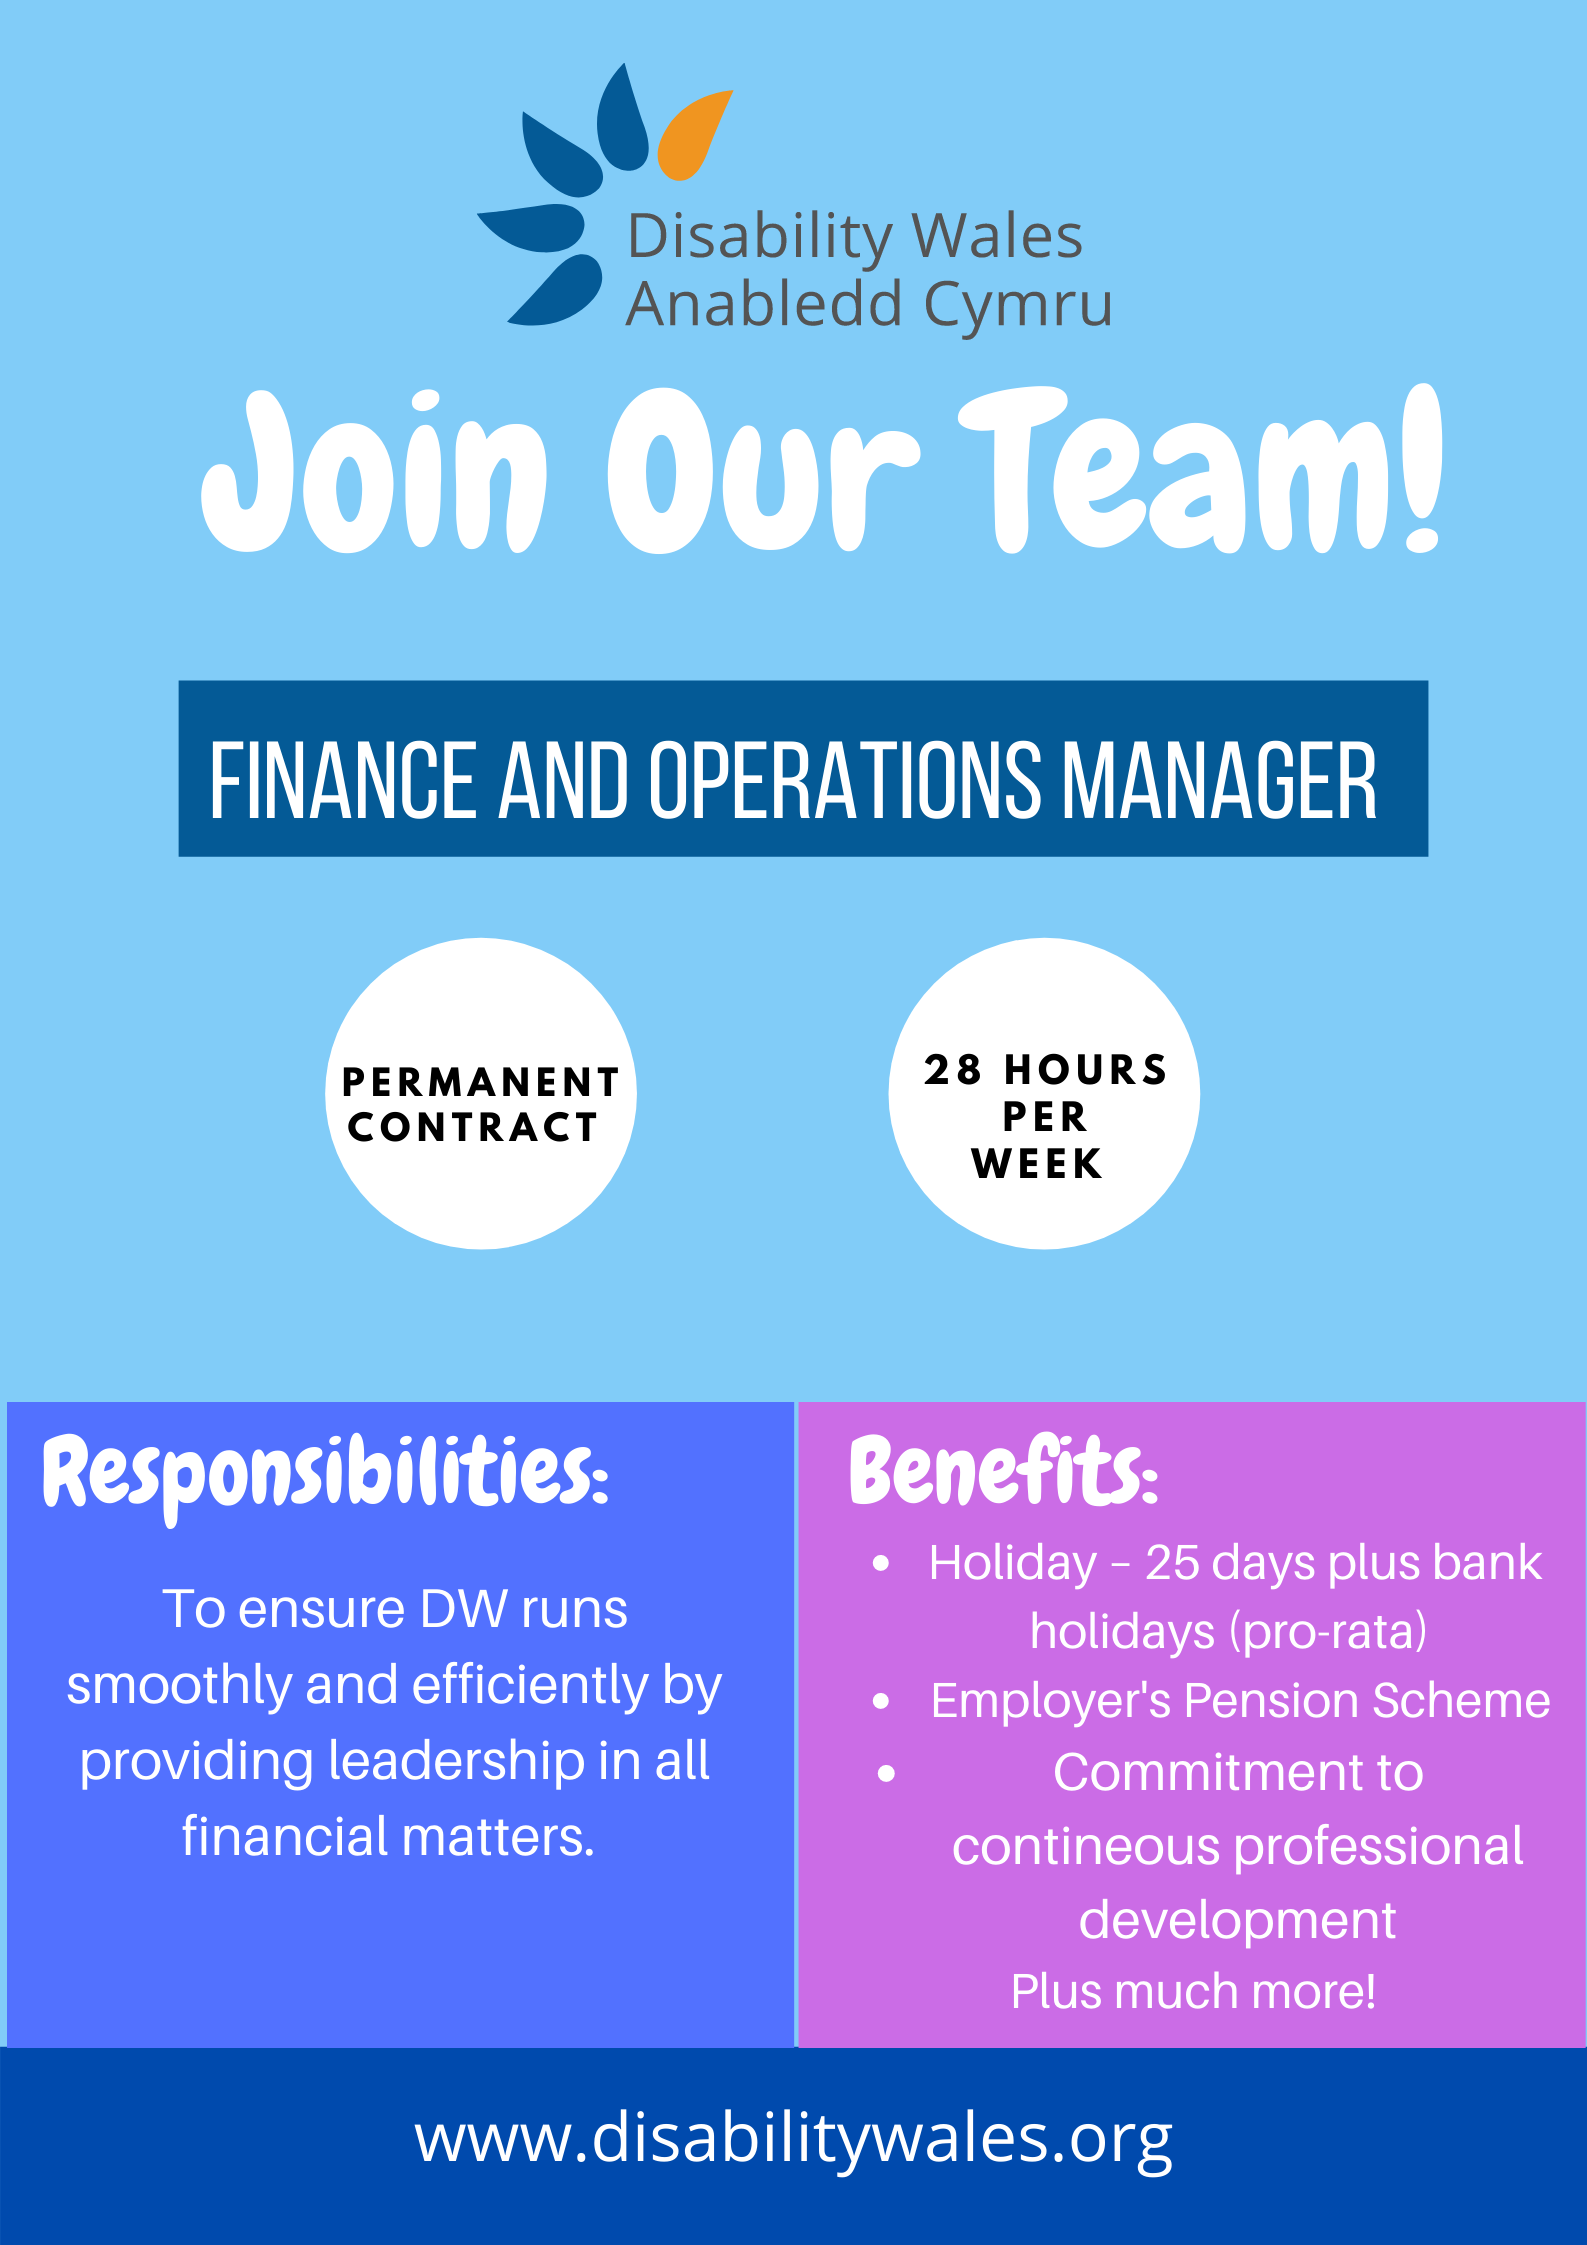 A blue job advert poster with the words Join our team in big white writing underneath a small DW logo. The job title: Finance and Operations Manager is in the centre with more details about the role underneath, including hours: 28 hours per week, permanent contract.